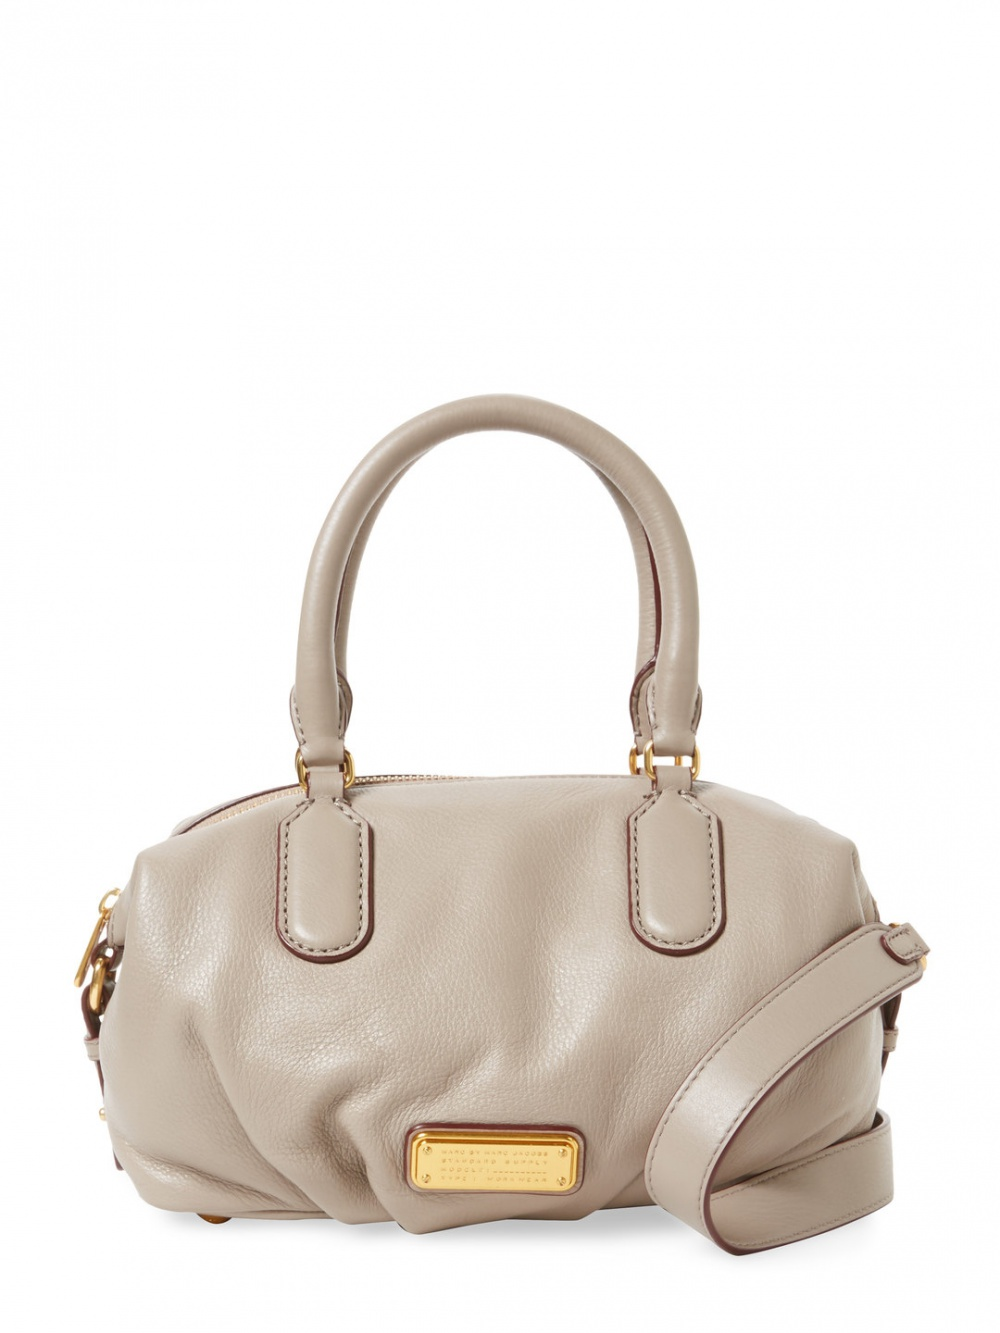 Marc by Marc Jacobs New Q Legend Small Satchel